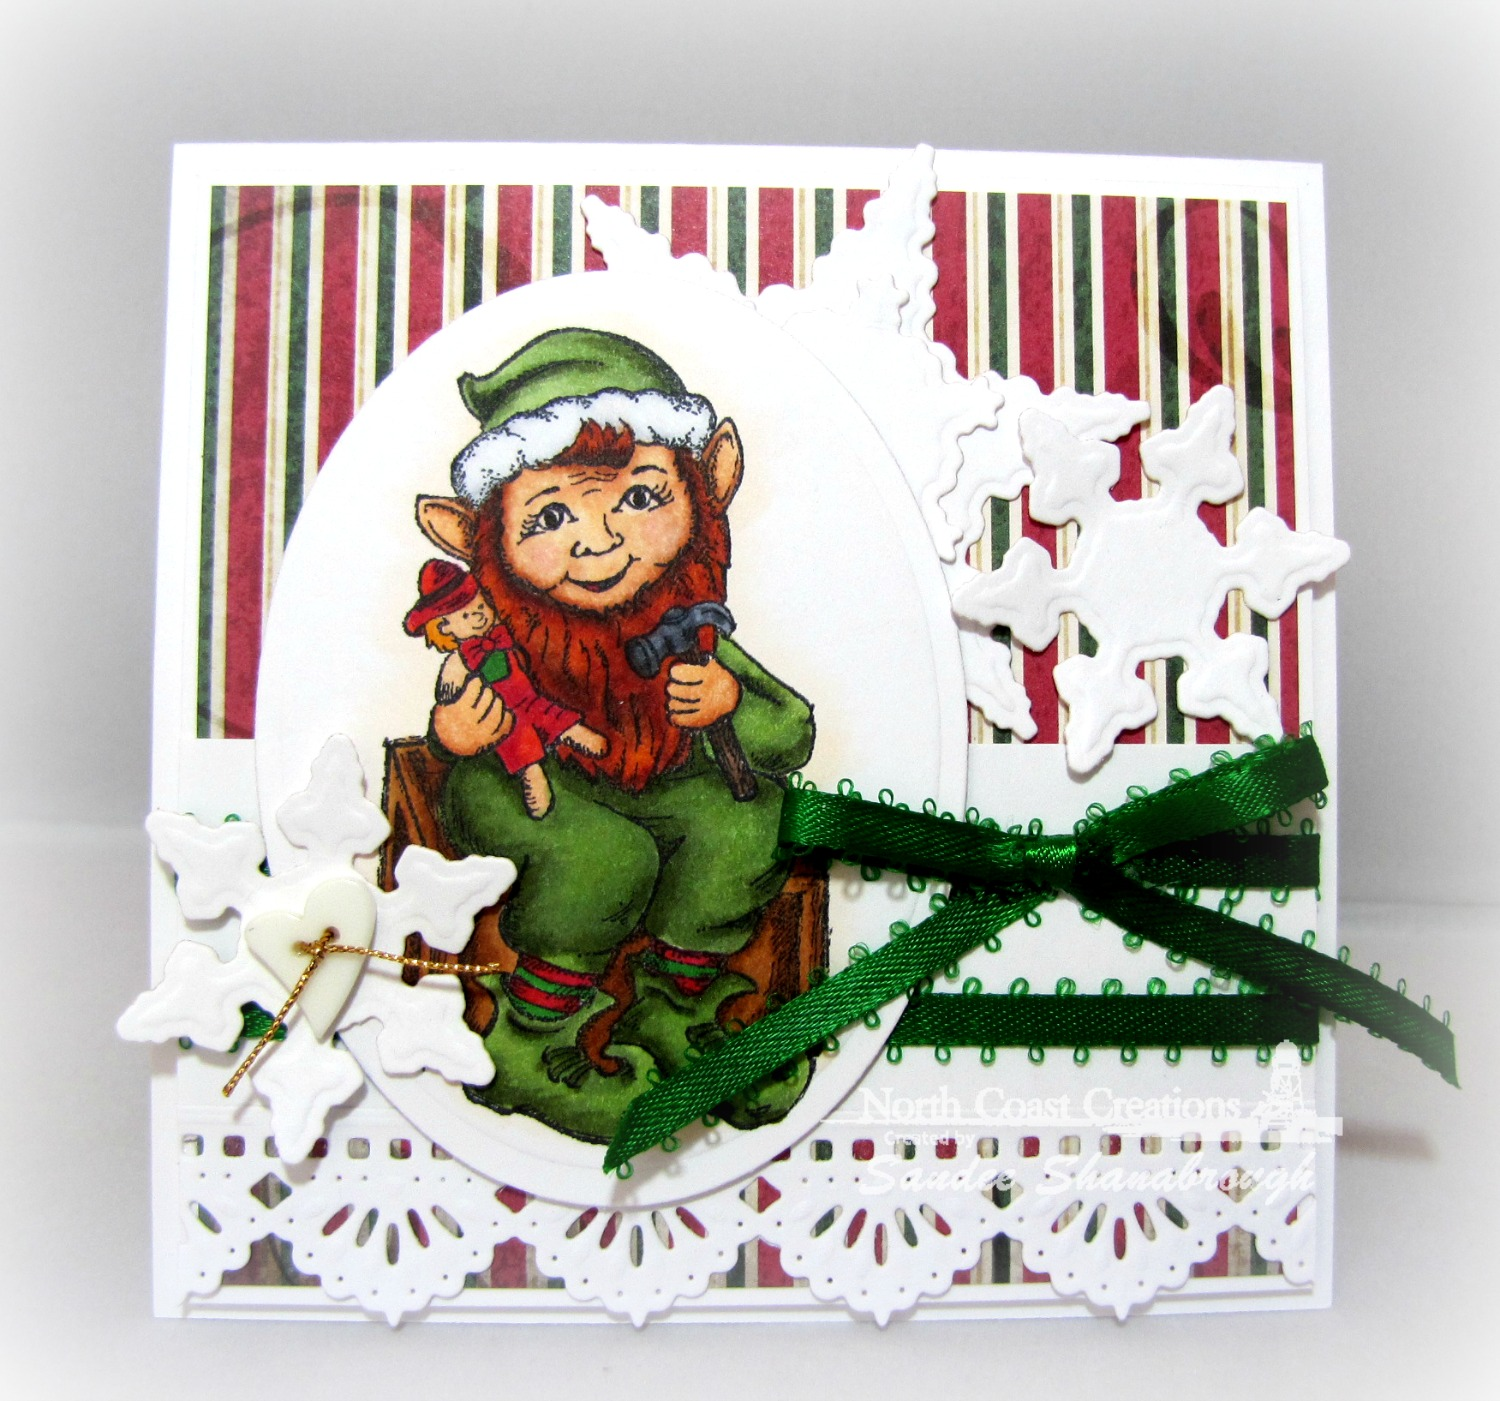 Stamps - North Coast Creations Elf, ODBD Custom Beautiful Borders Dies, ODBD Custom Snowflakes Dies, ODBD Christmas Paper Collection 2013